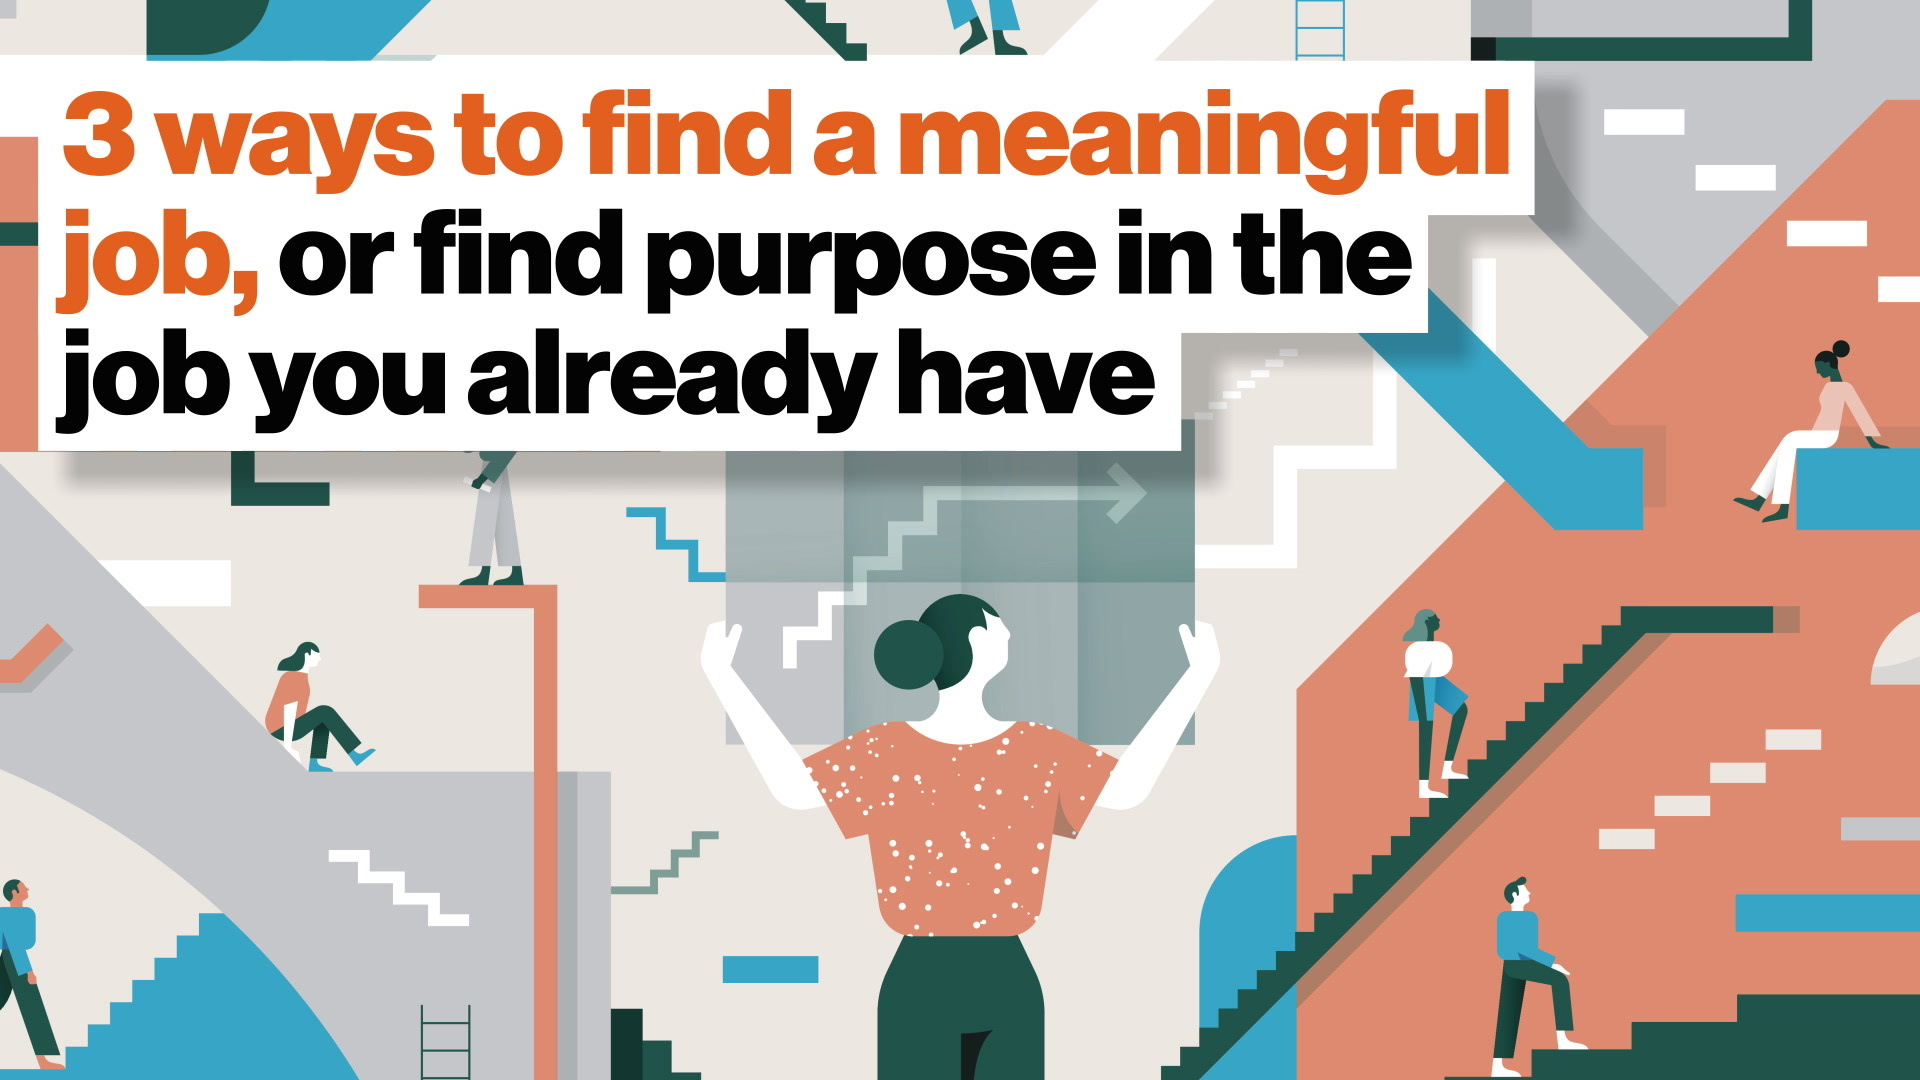 3 ways to find a meaningful job, or find purpose in the job you already have